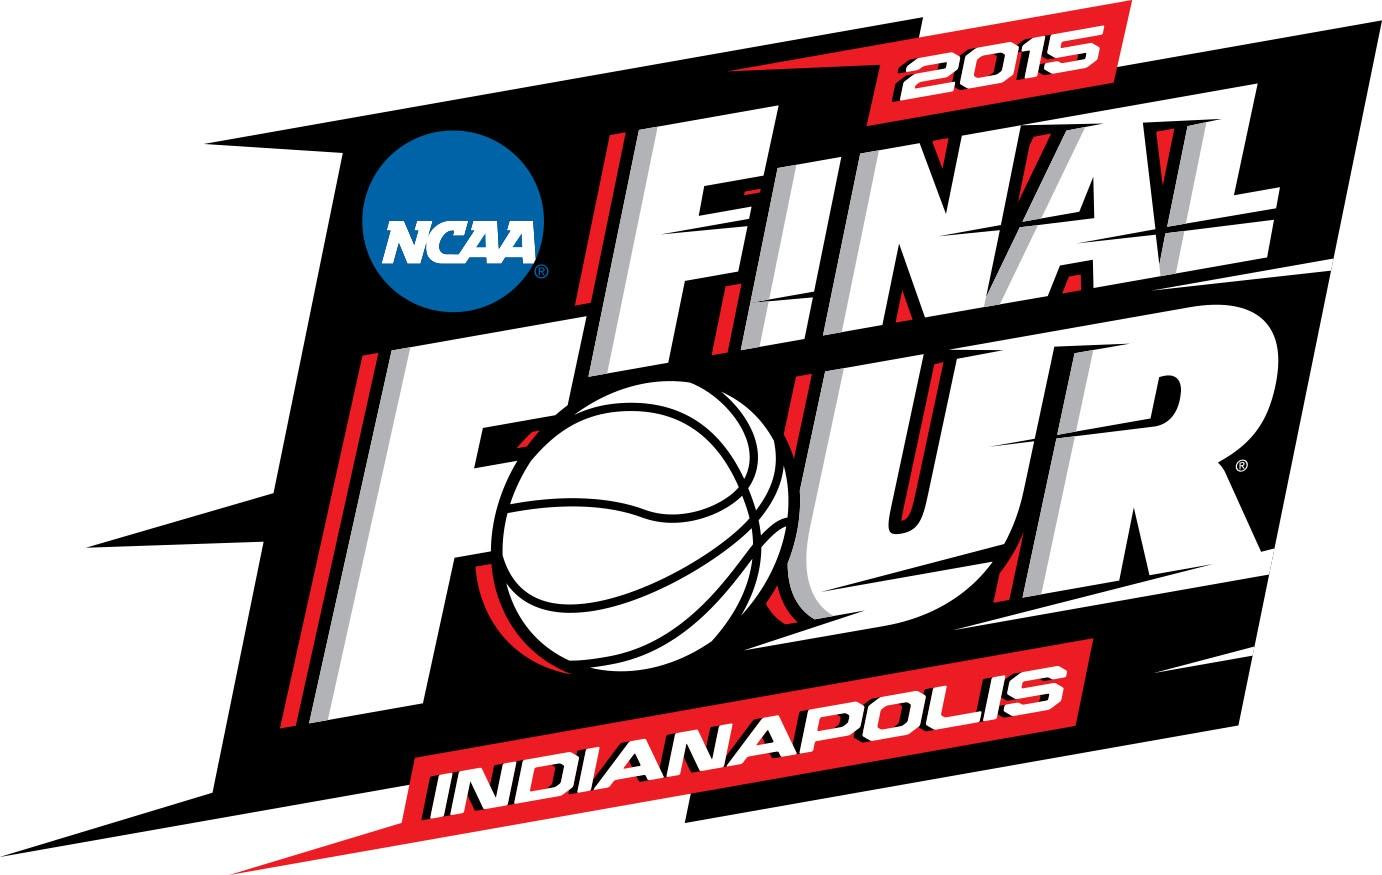 The Final Four will take place in Indianapolis this year, which will cap off what should be an exciting couple weeks of basketball